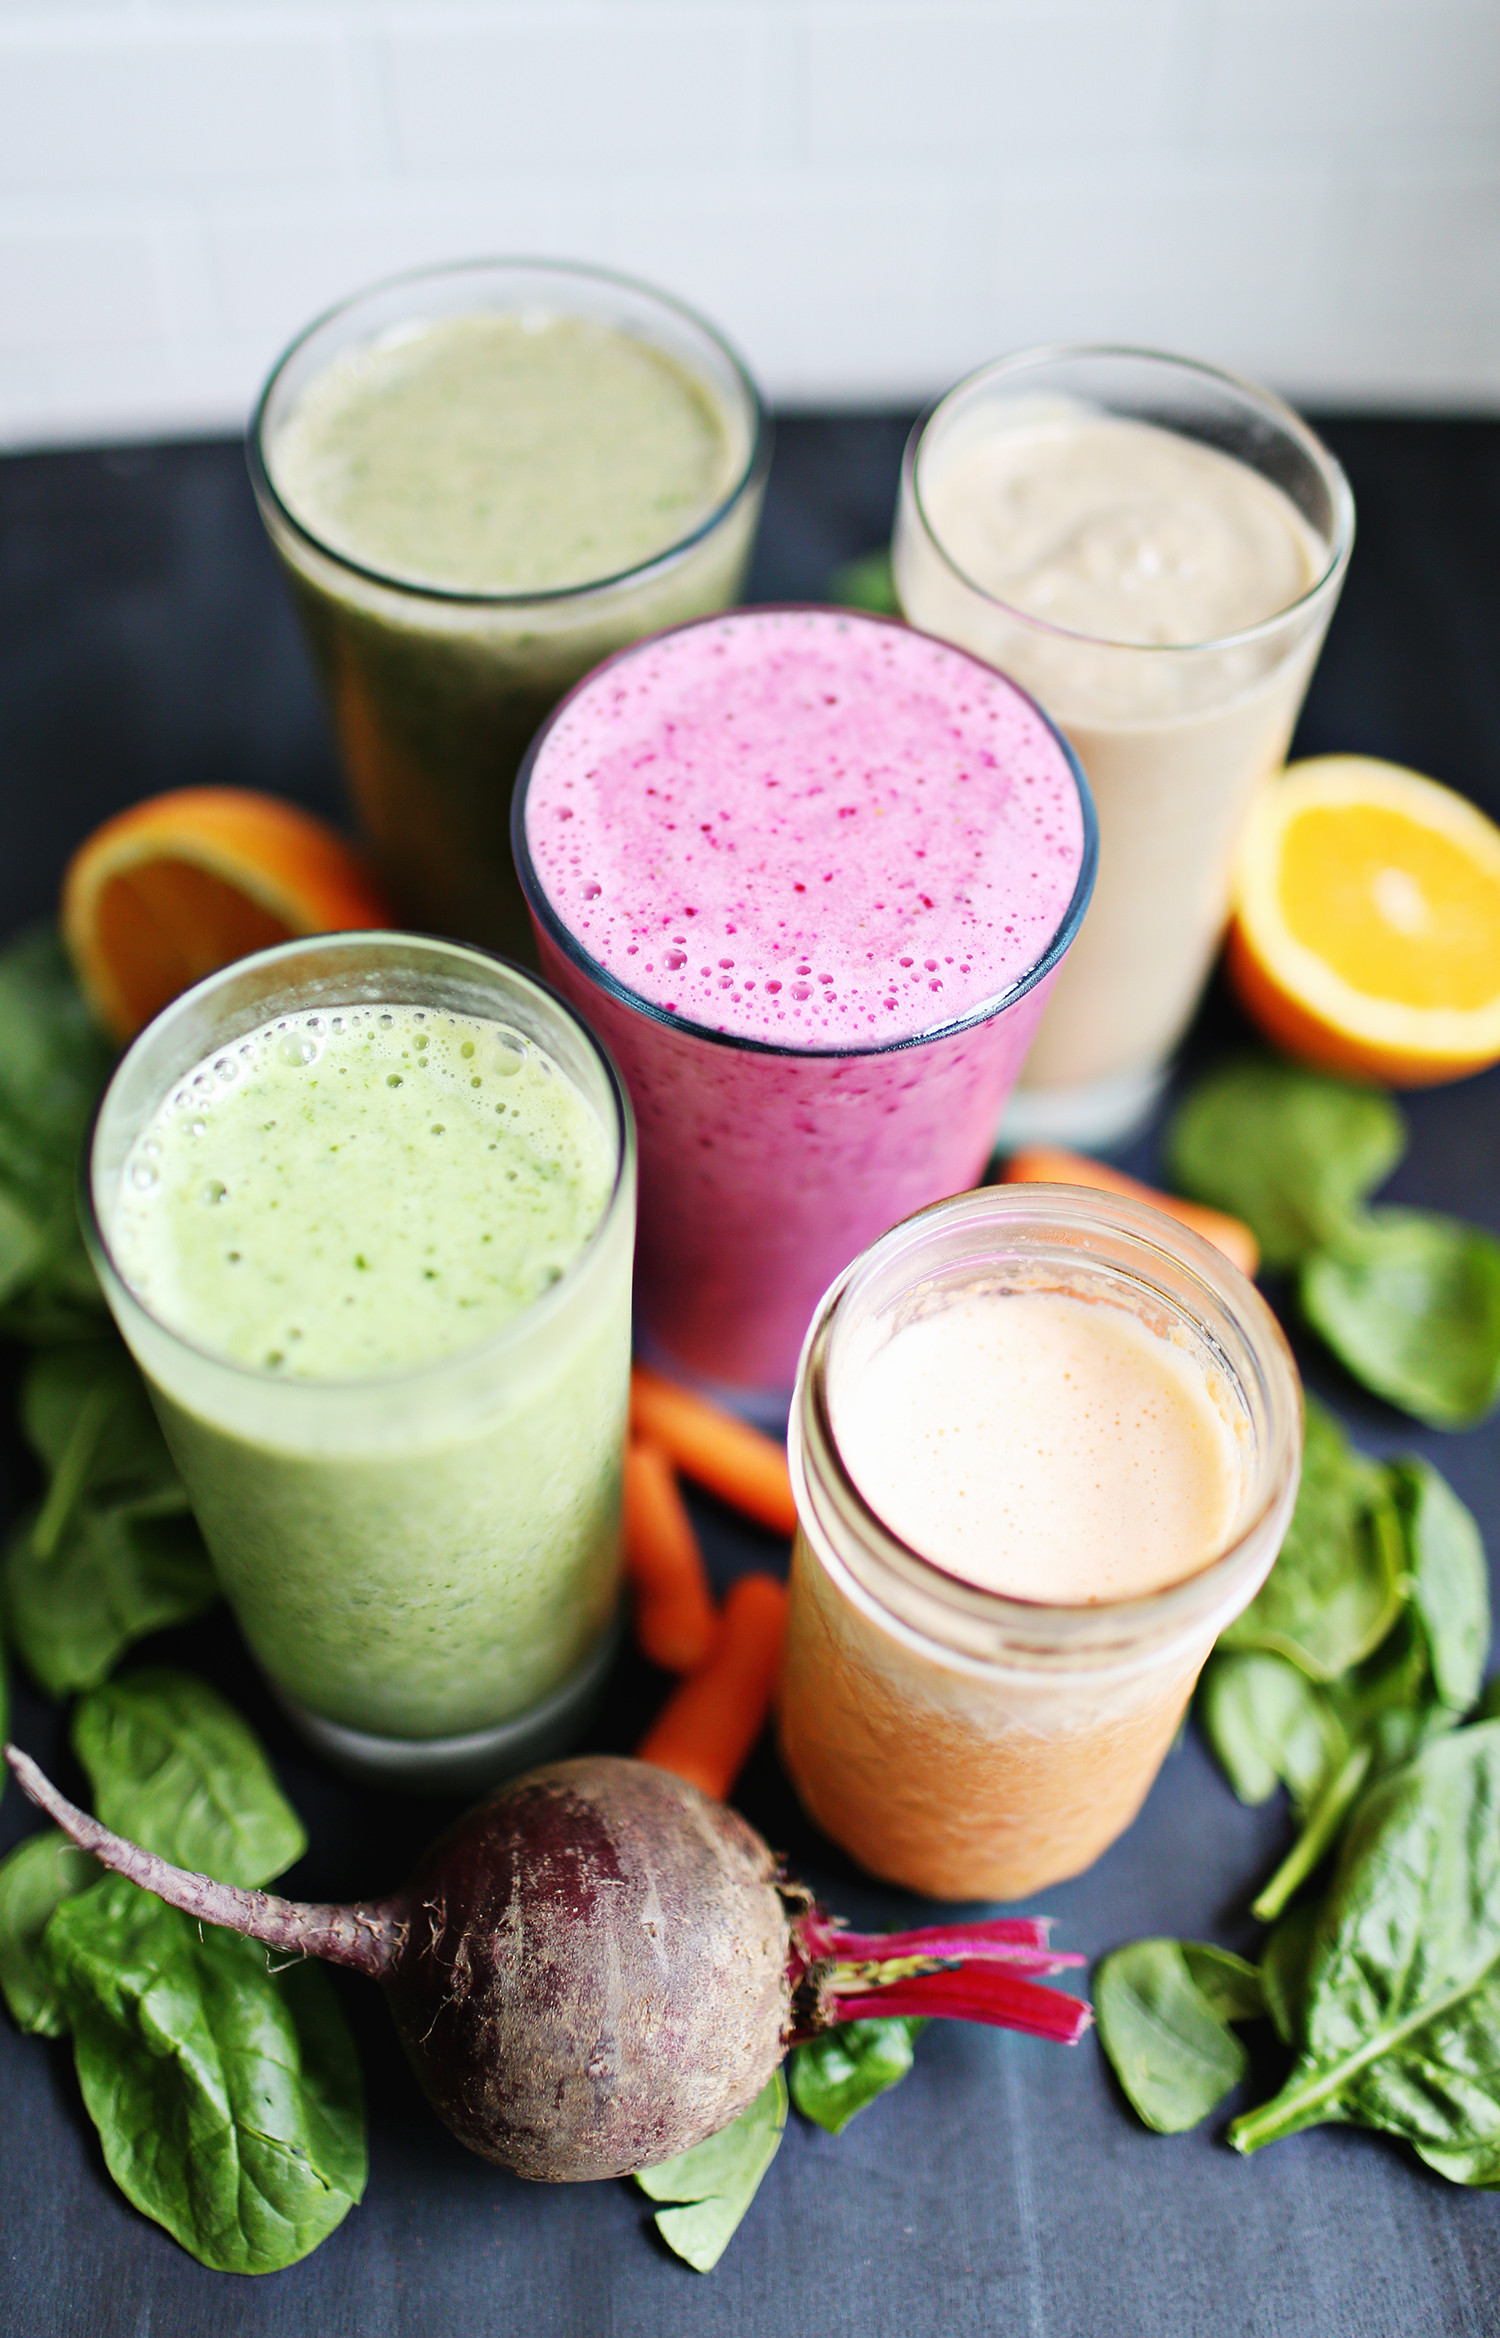 Healthy Vegetable Smoothie Recipes  5 Veggie Based Breakfast Smoothies A Beautiful Mess